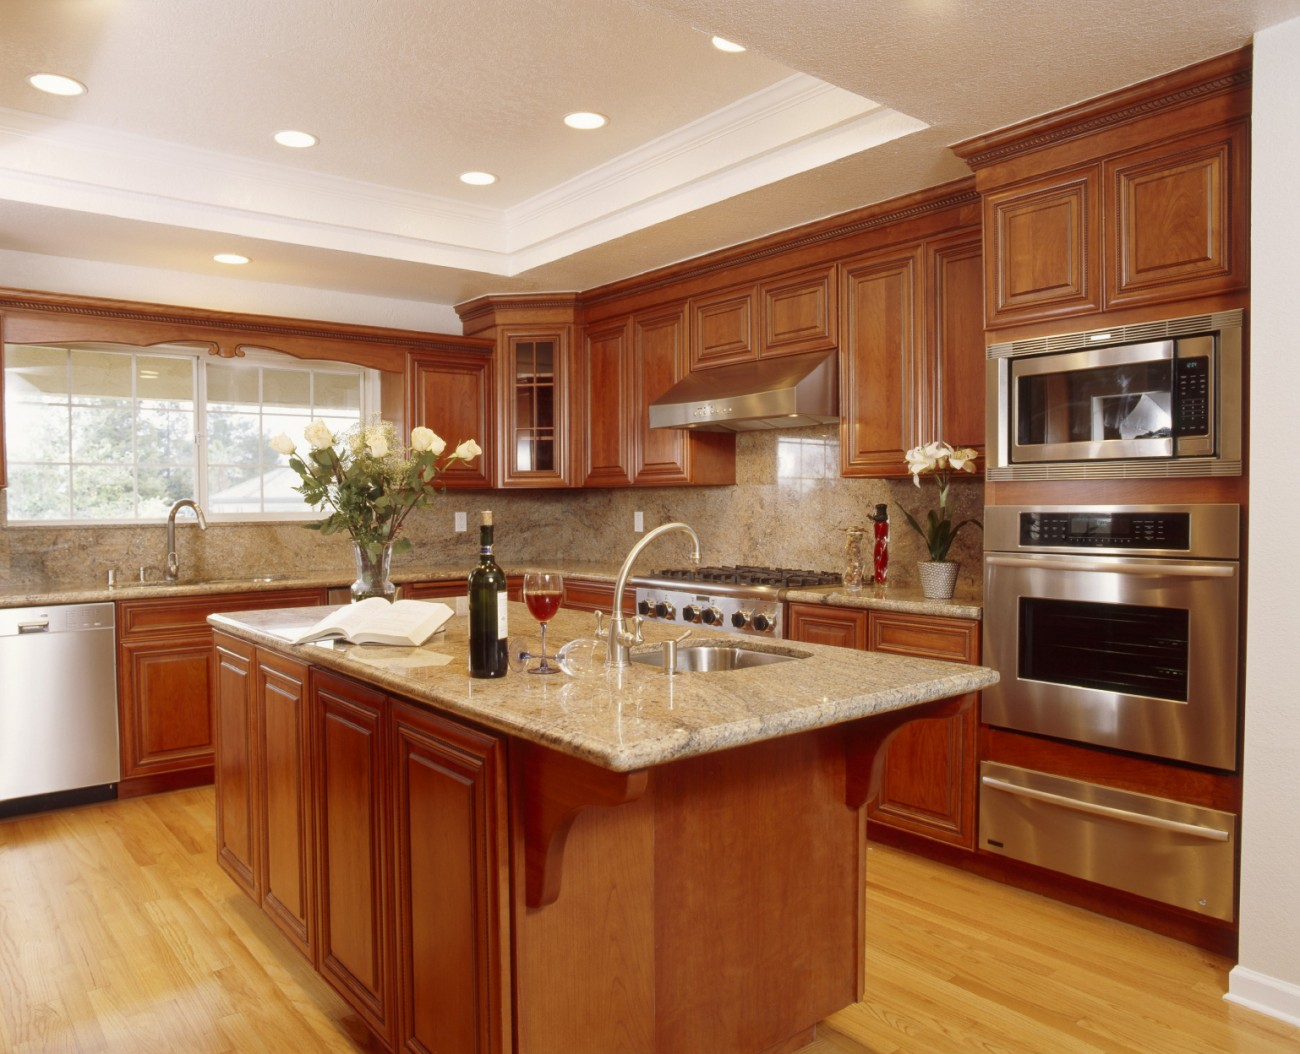 Beautiful kitchen - Kitchen remodel designs ...